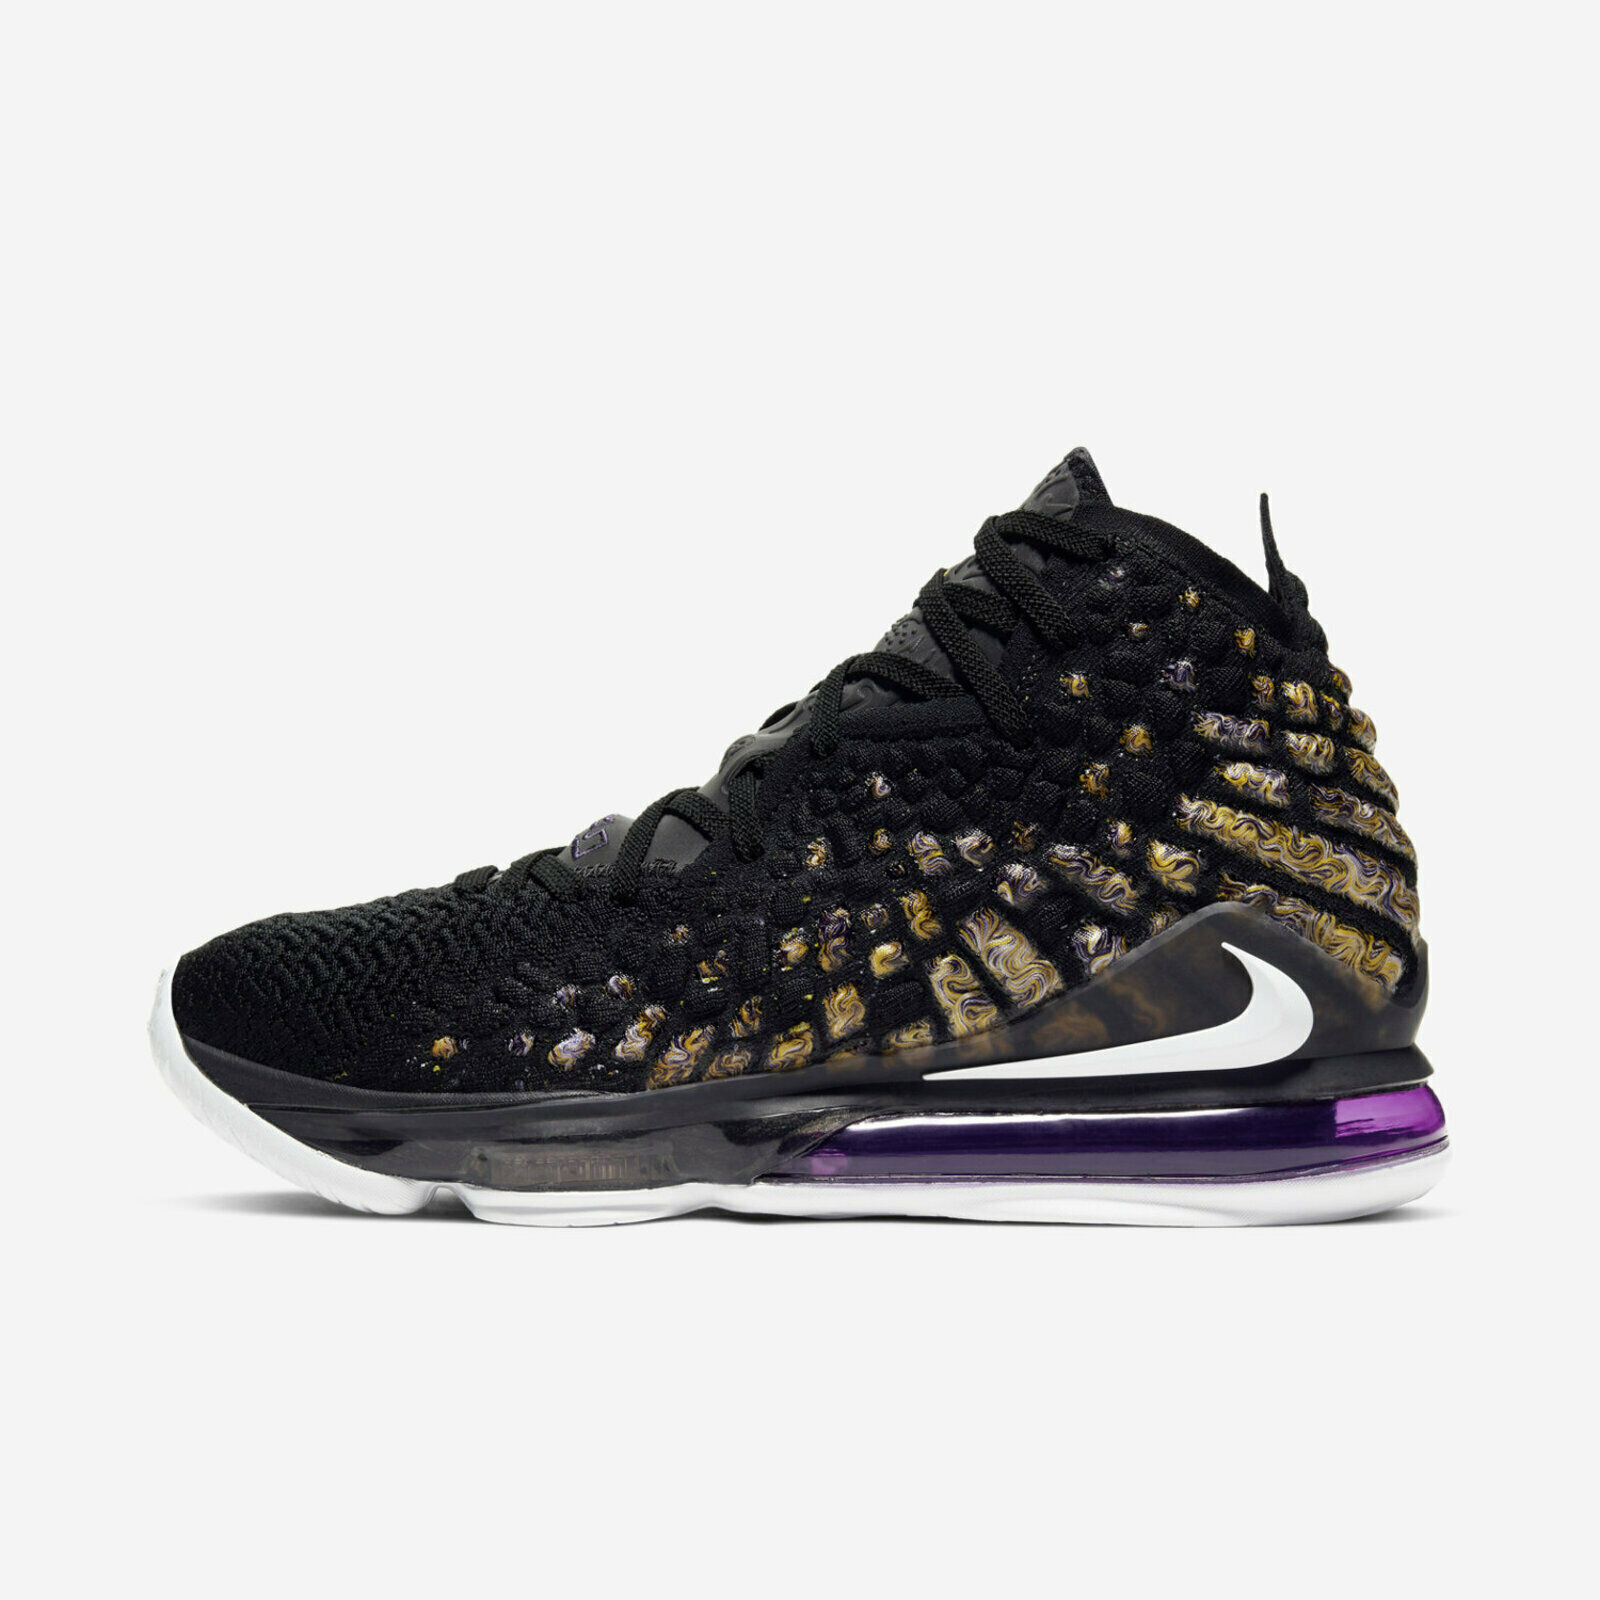 Nike LeBron 17 Lakers